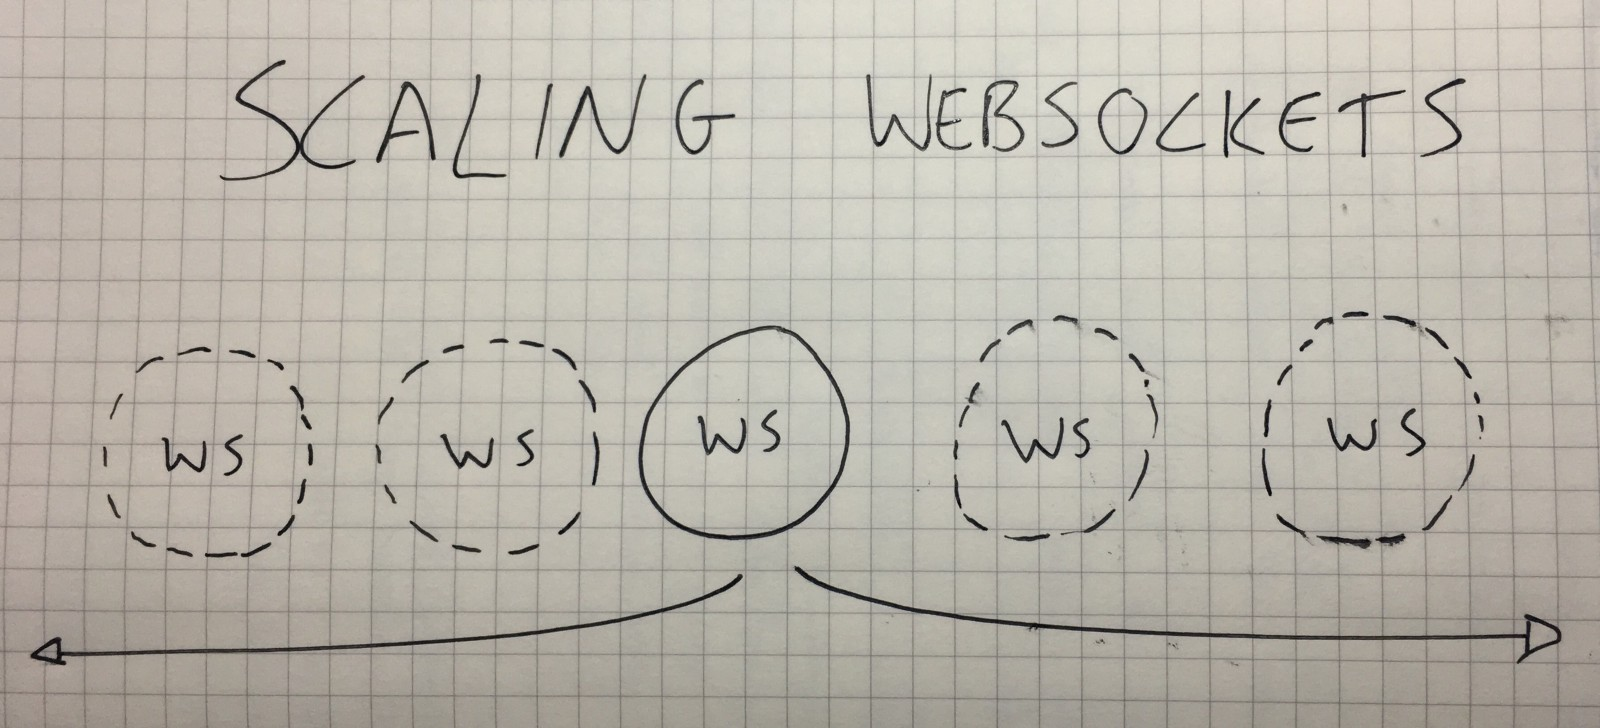 How to Scale WebSockets - By